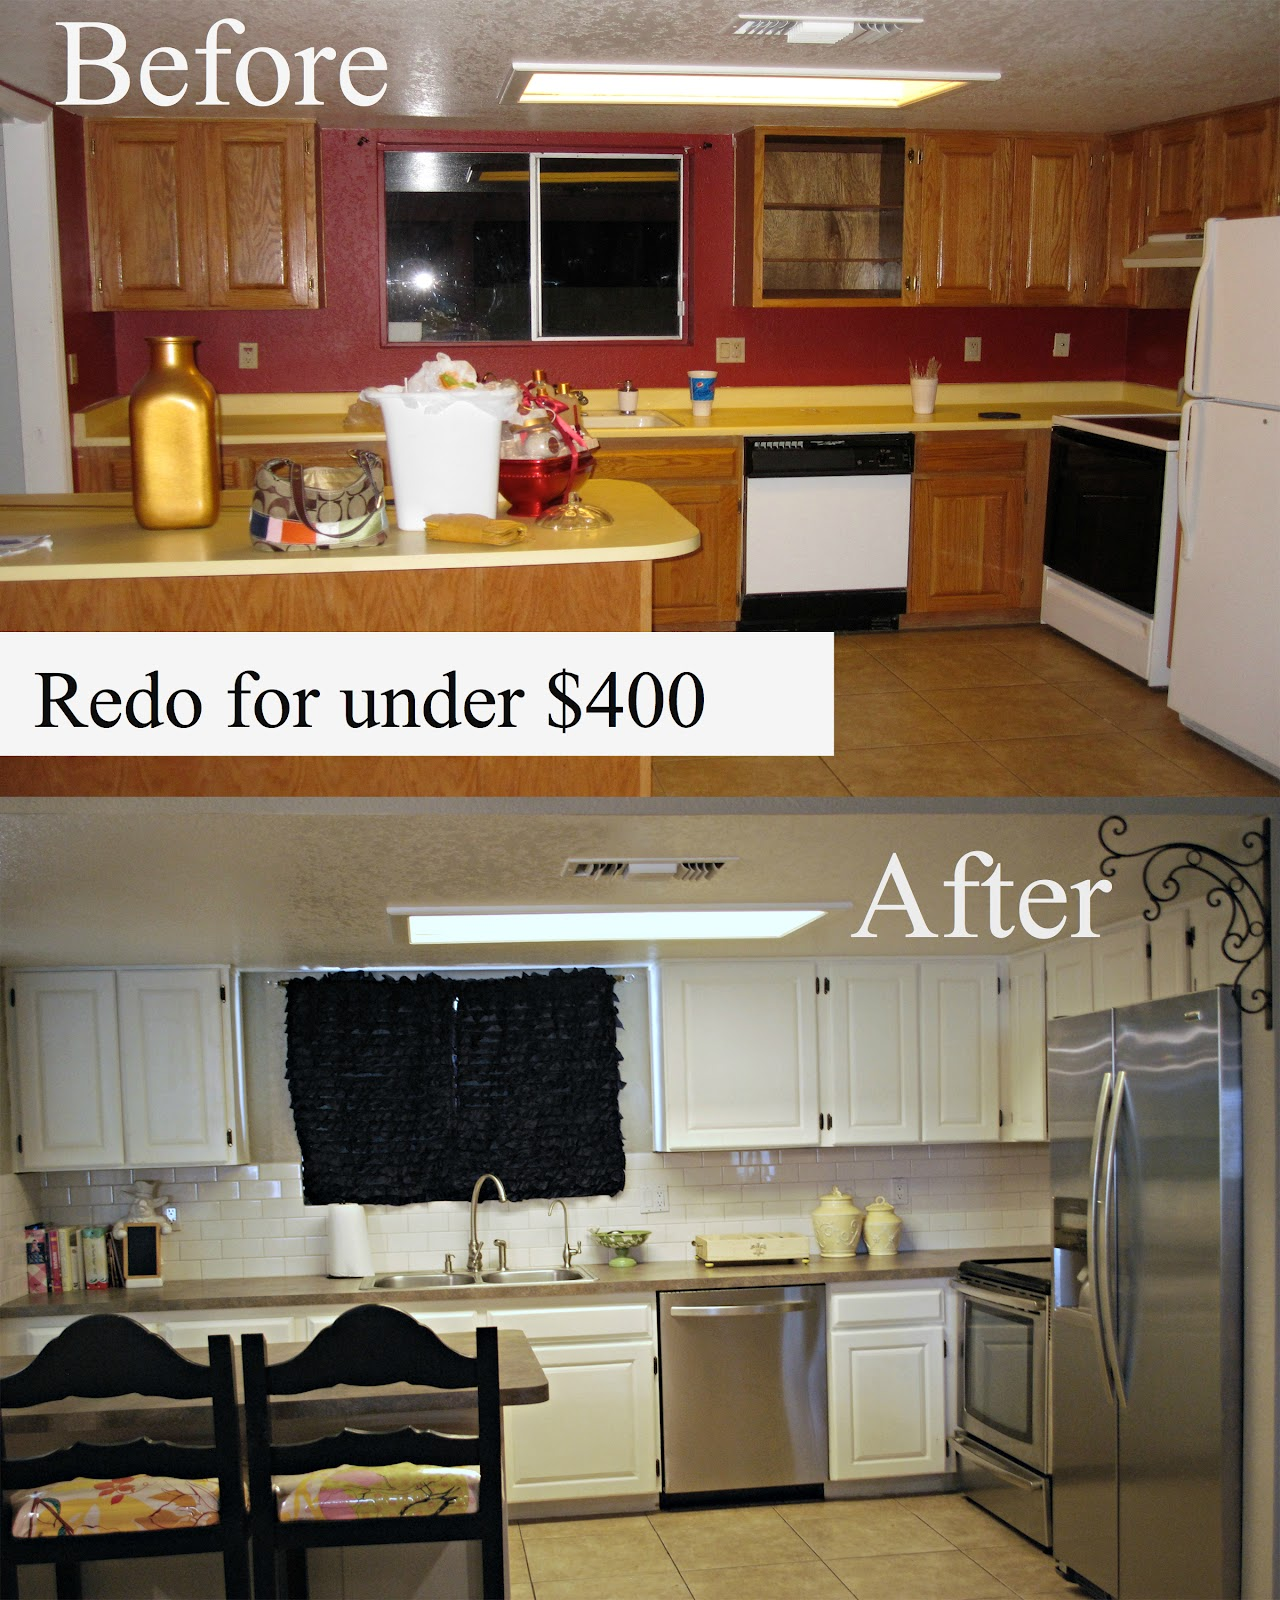 My Kitchen Redo Under $400!